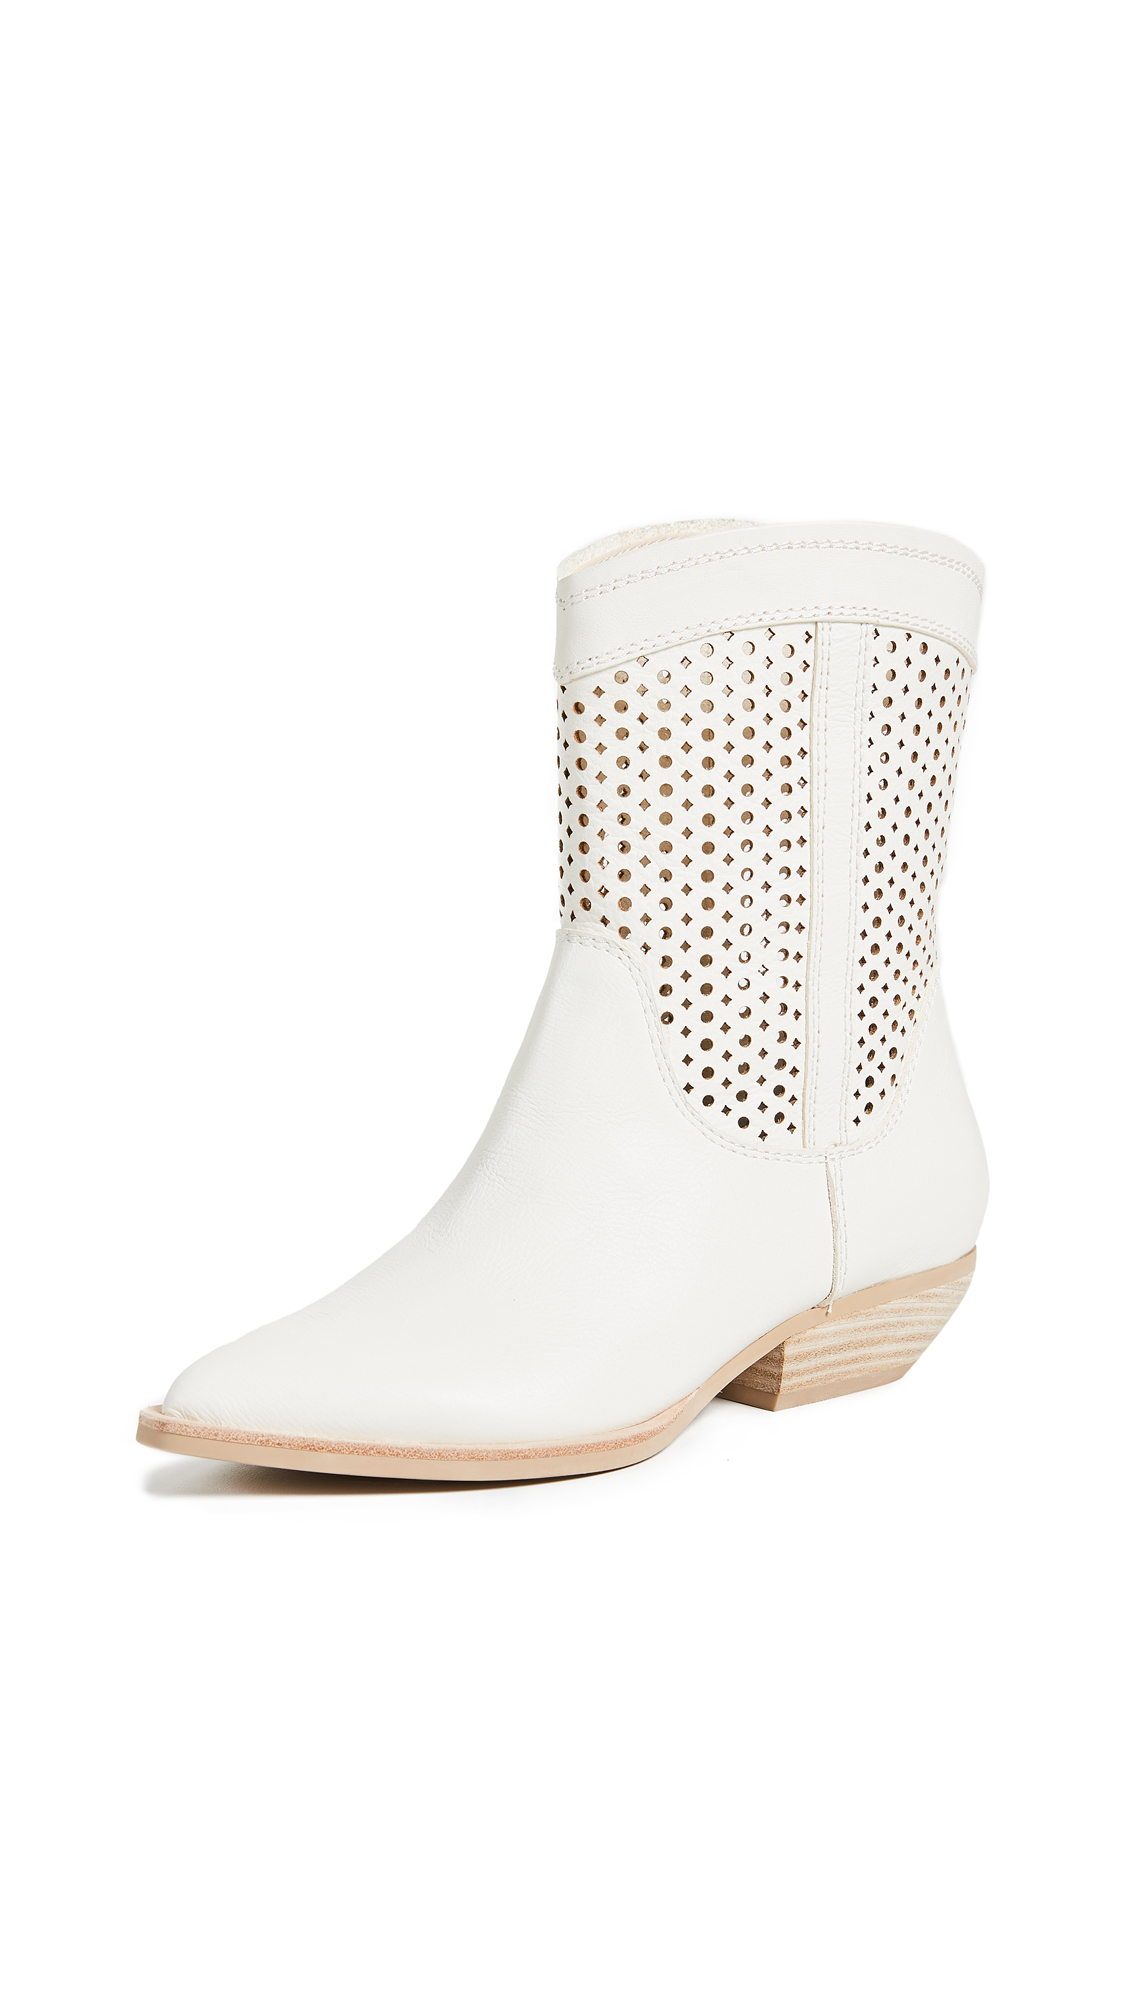 Dolce Vita Union Western Boots - Off White